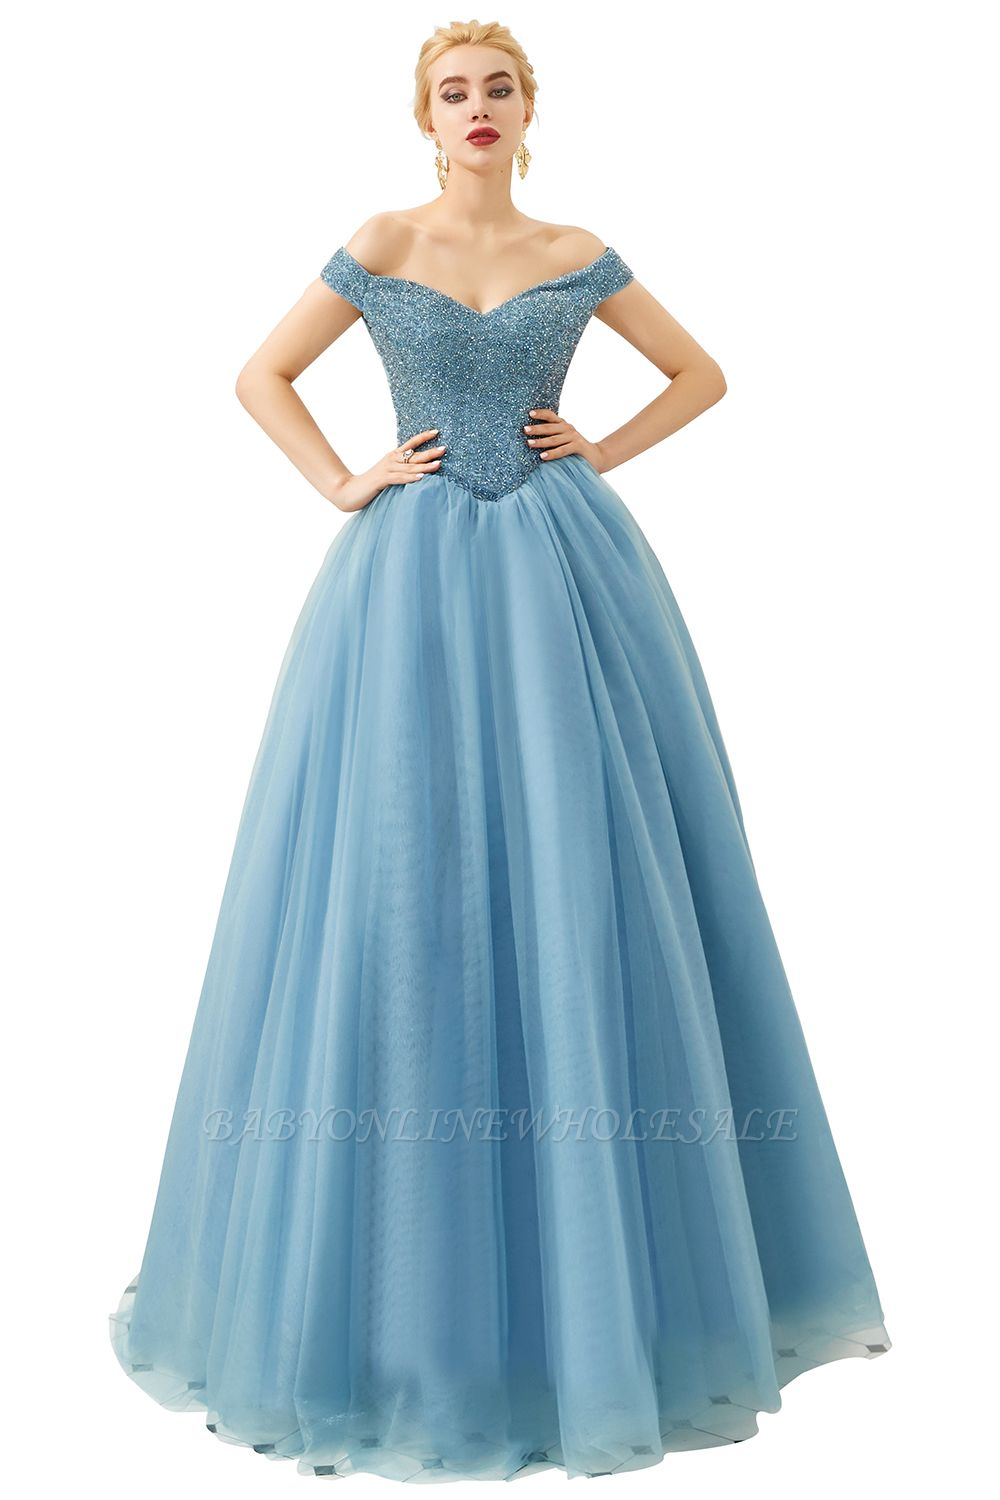 Harry   Elegant Emerald green Off-the-shoulder Ball Gown Dress for Prom/Evening